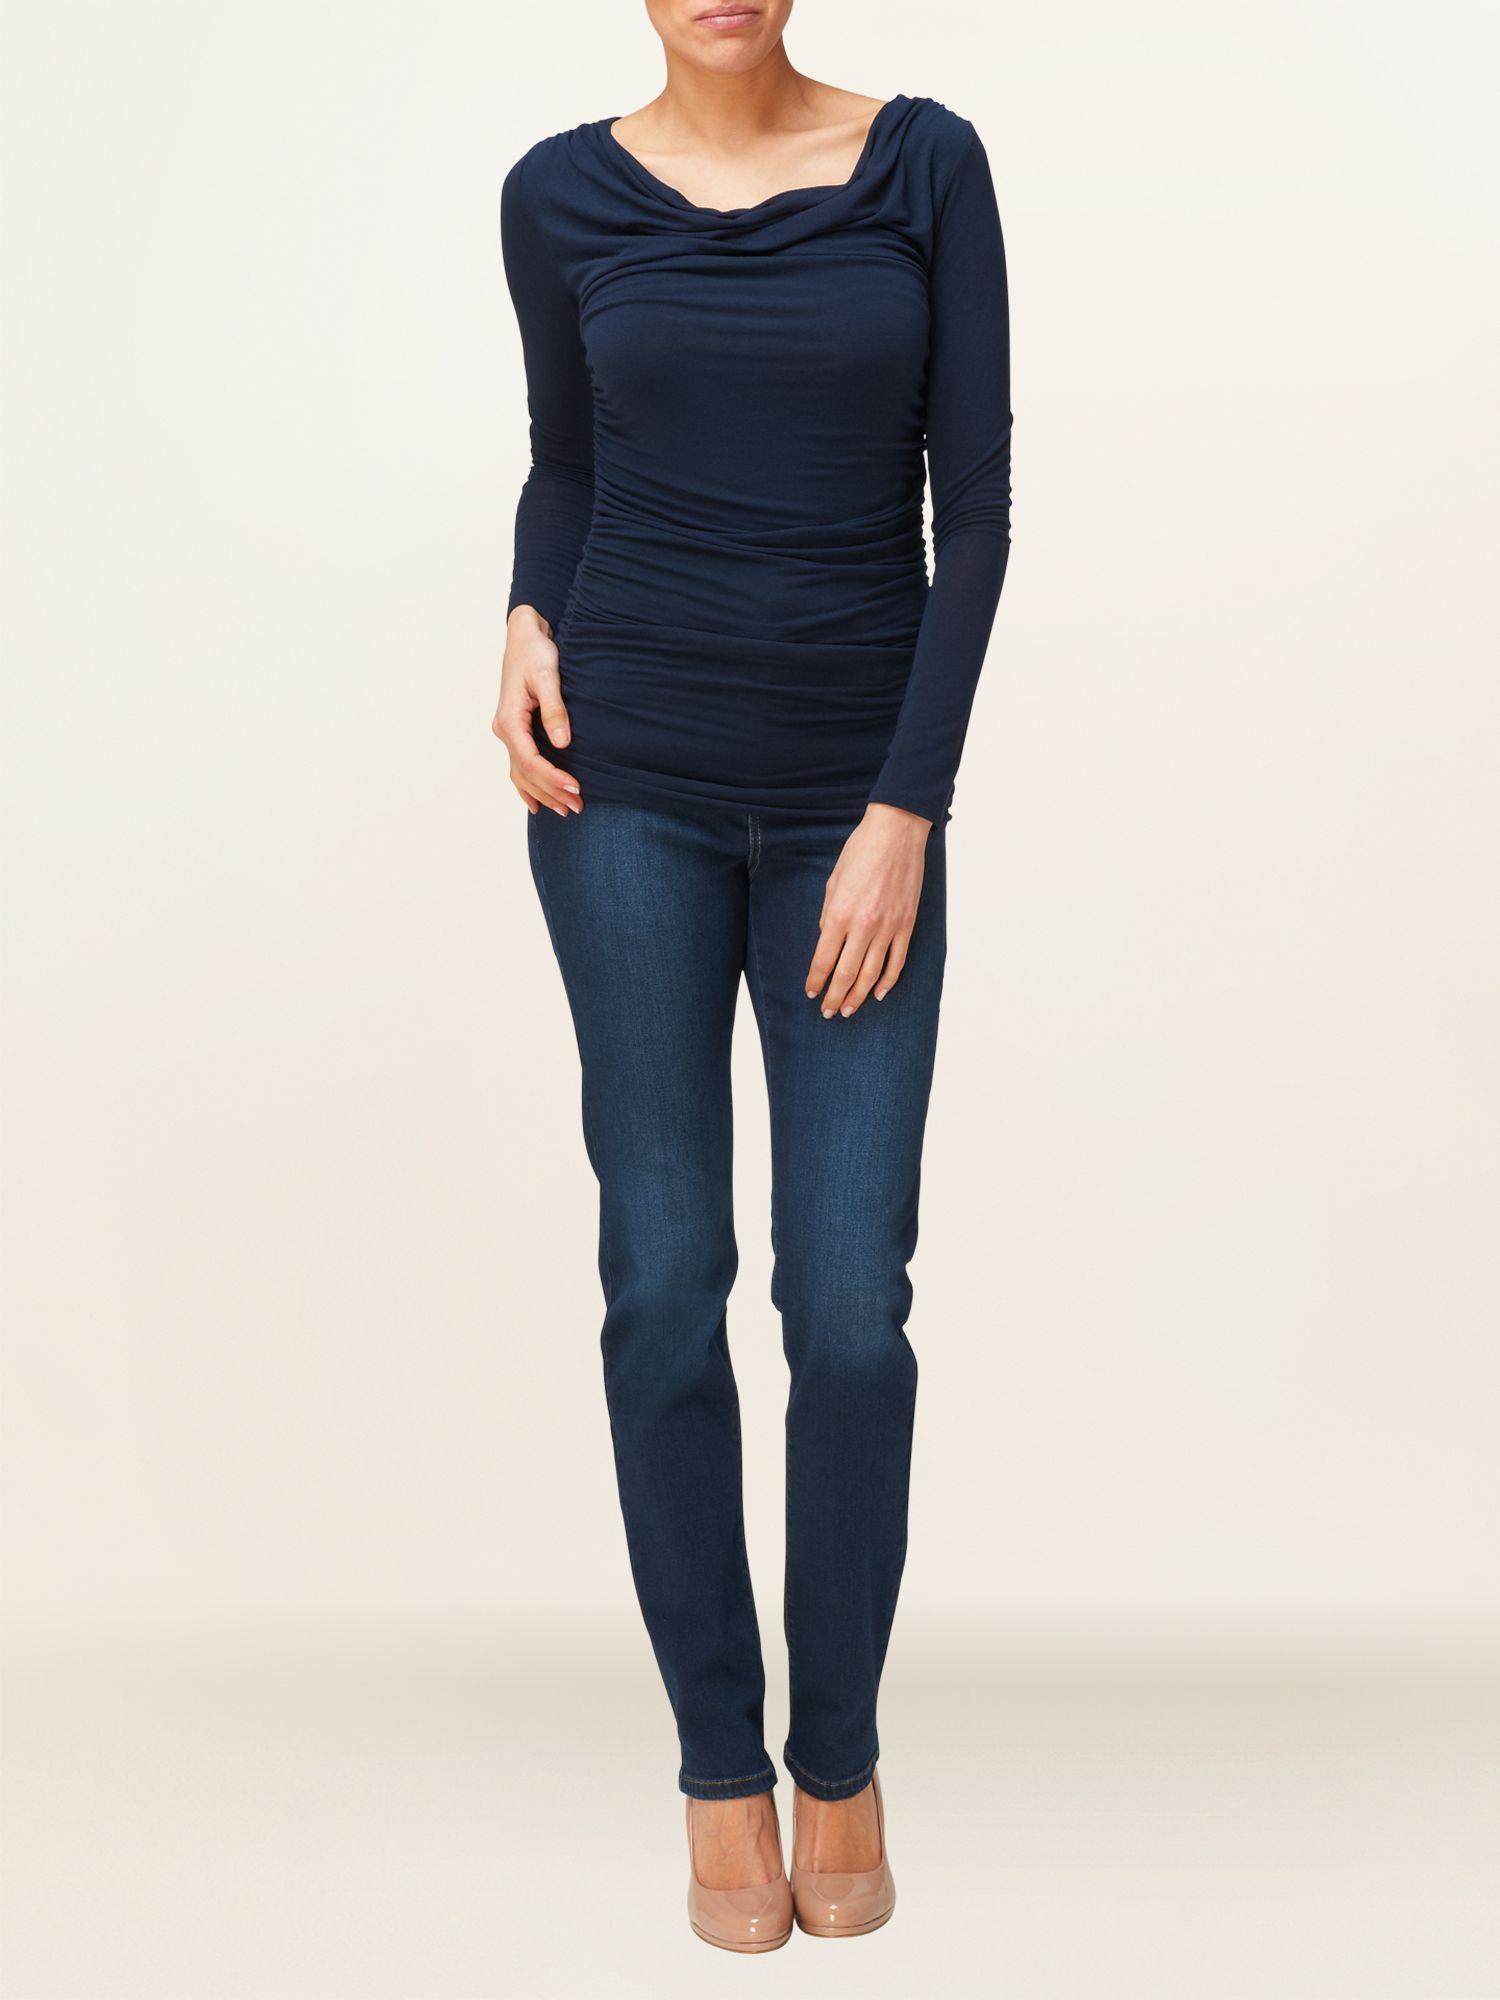 Tallie long sleeve top